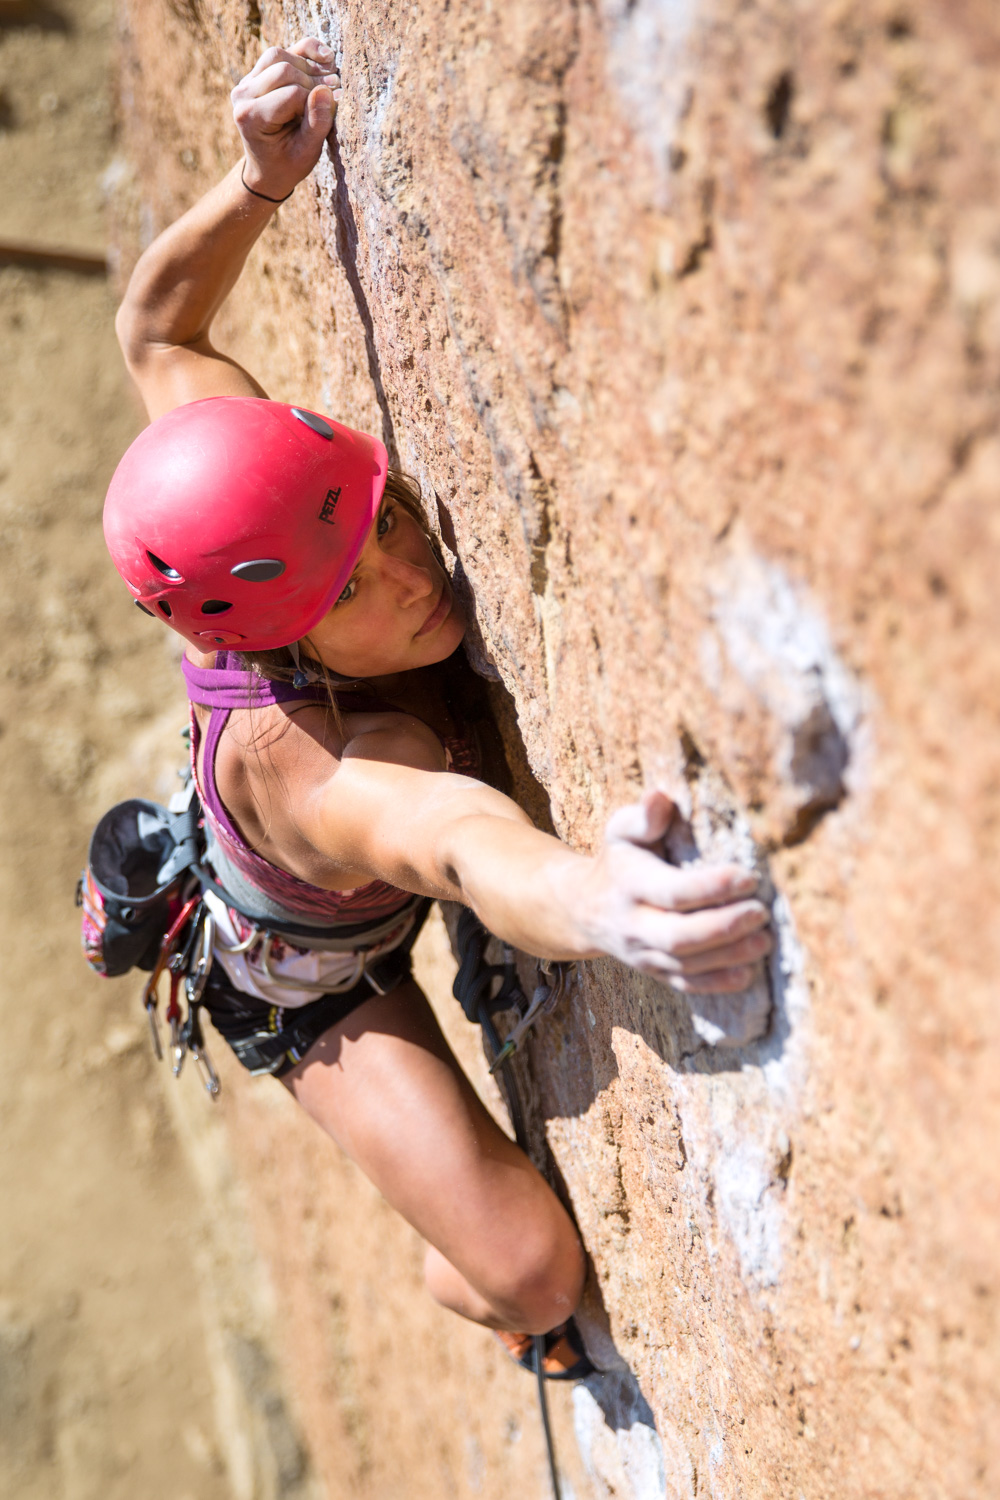 Lisa Chulich reaching for a hold. Smith Rock, OR